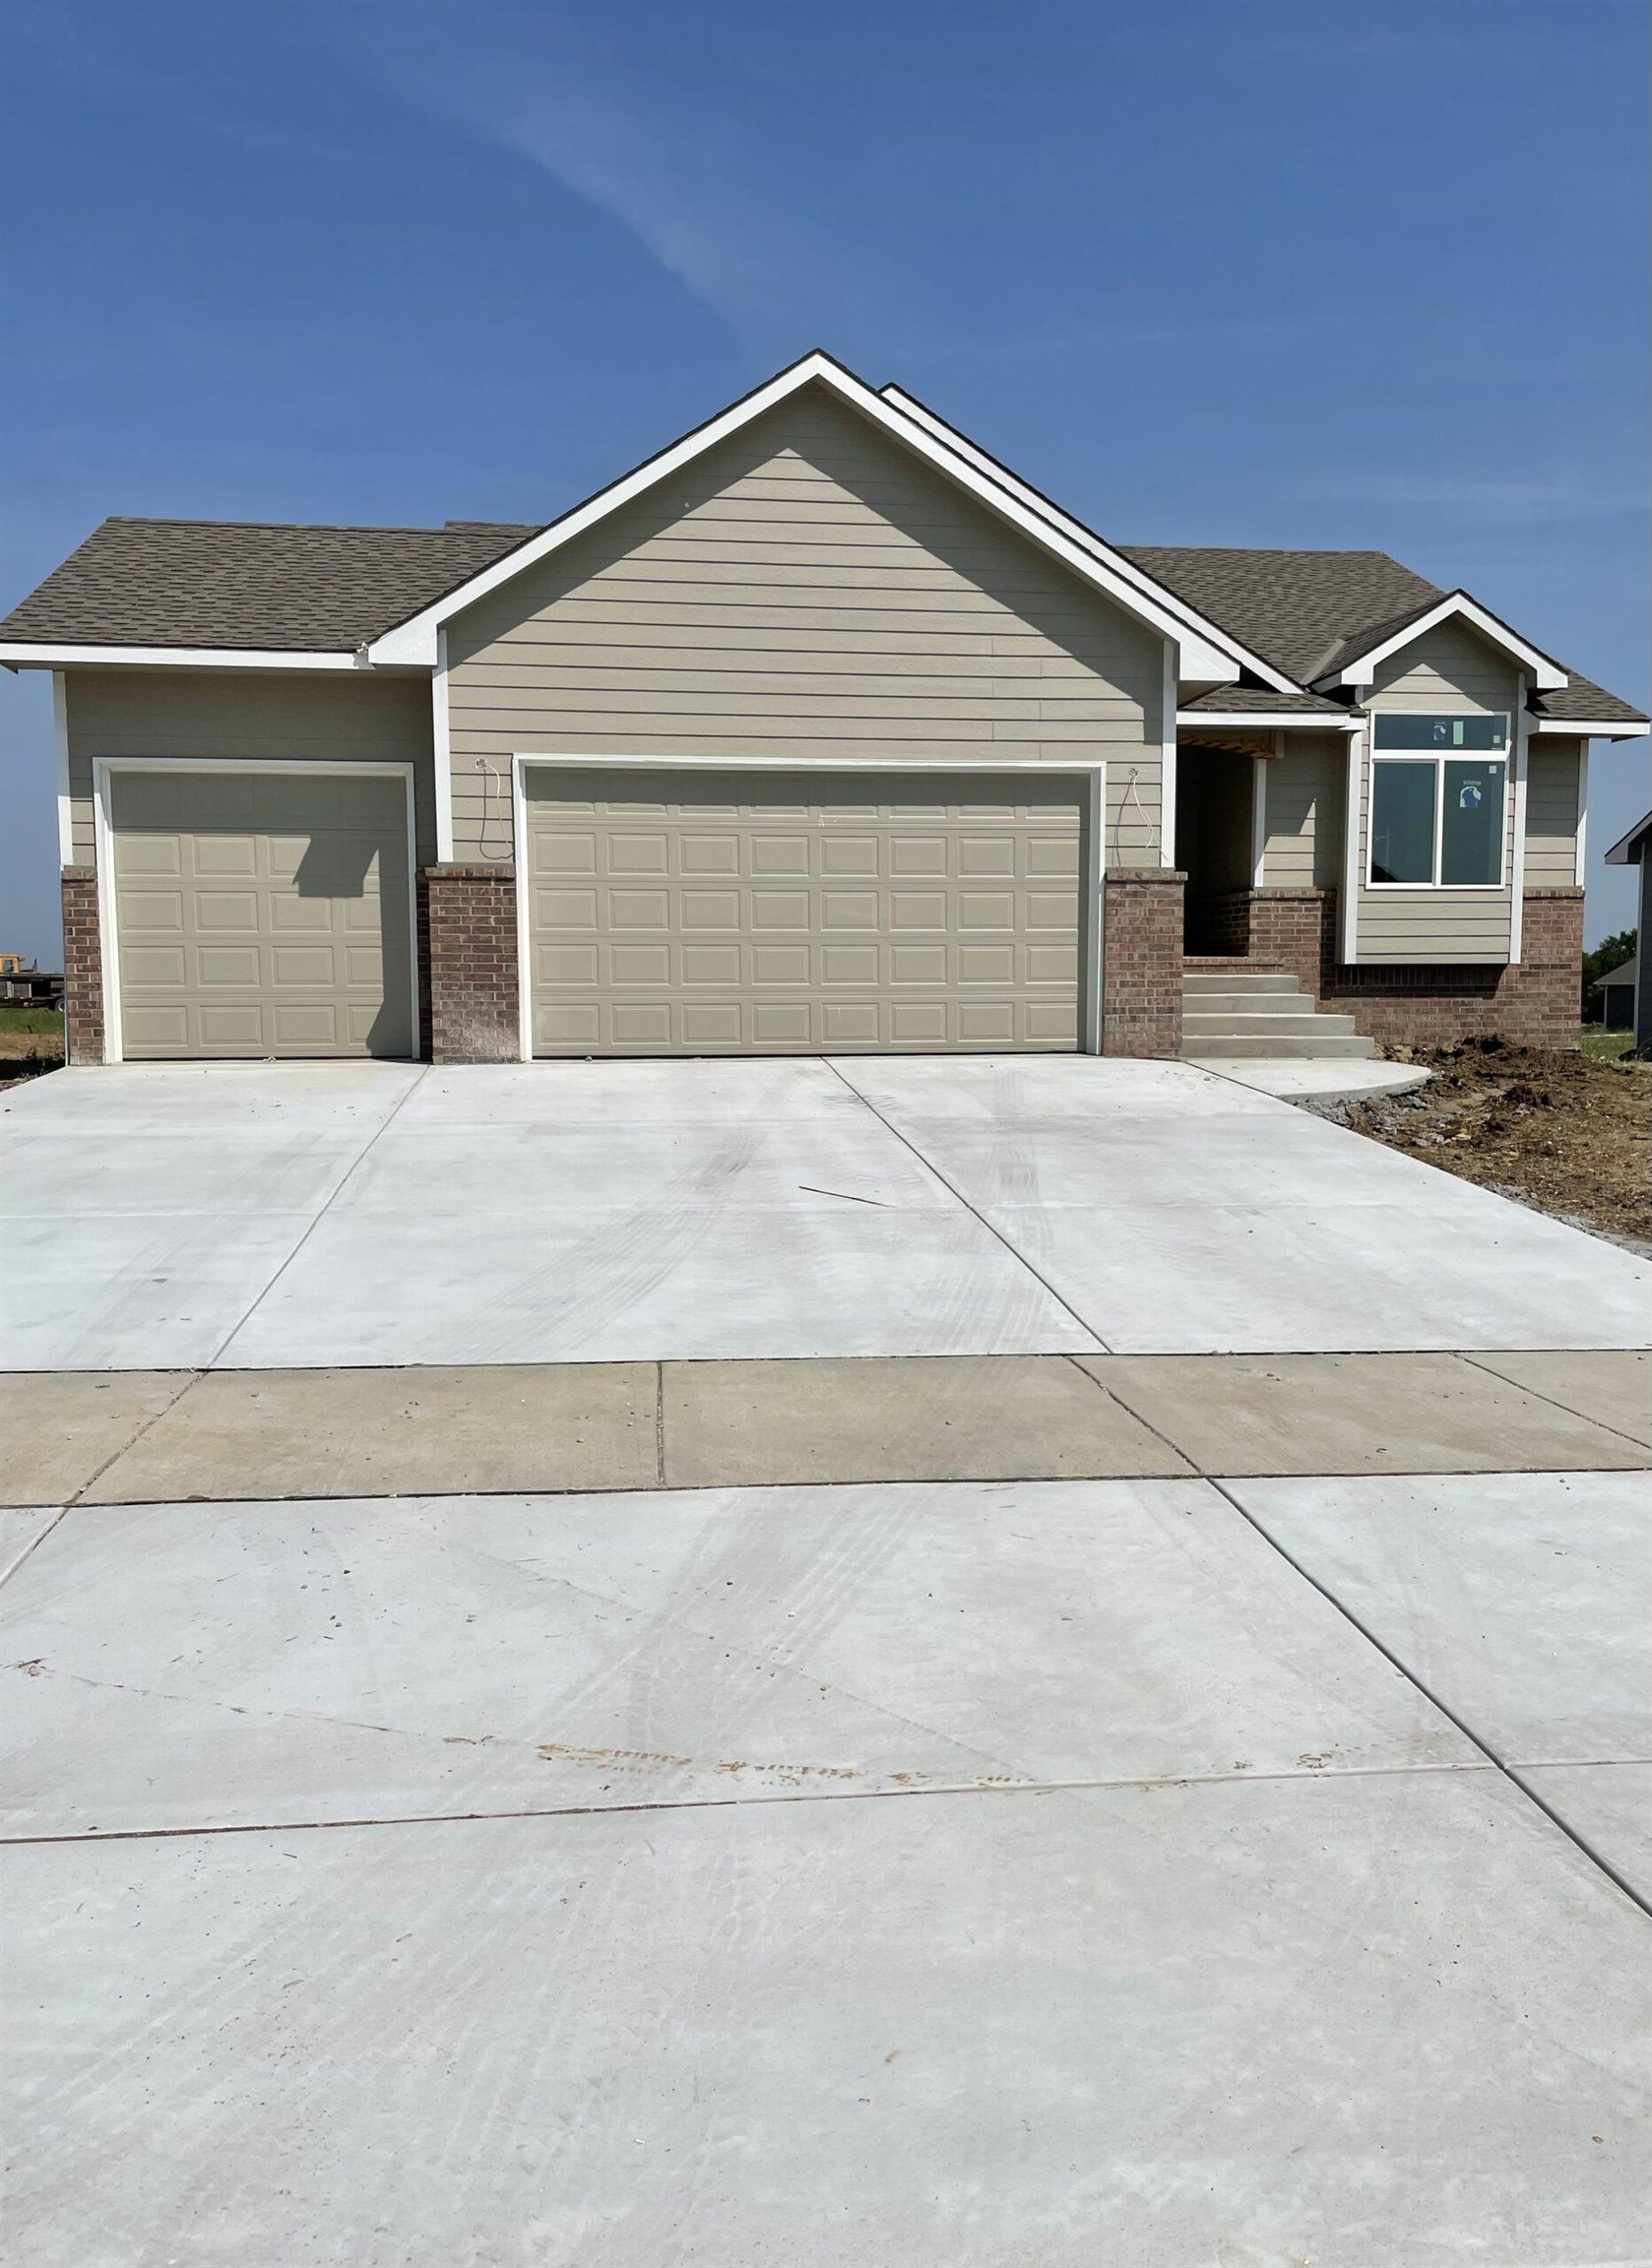 Come see this BRAND NEW home in a BRAND NEW development! The main floor features and open, split bed